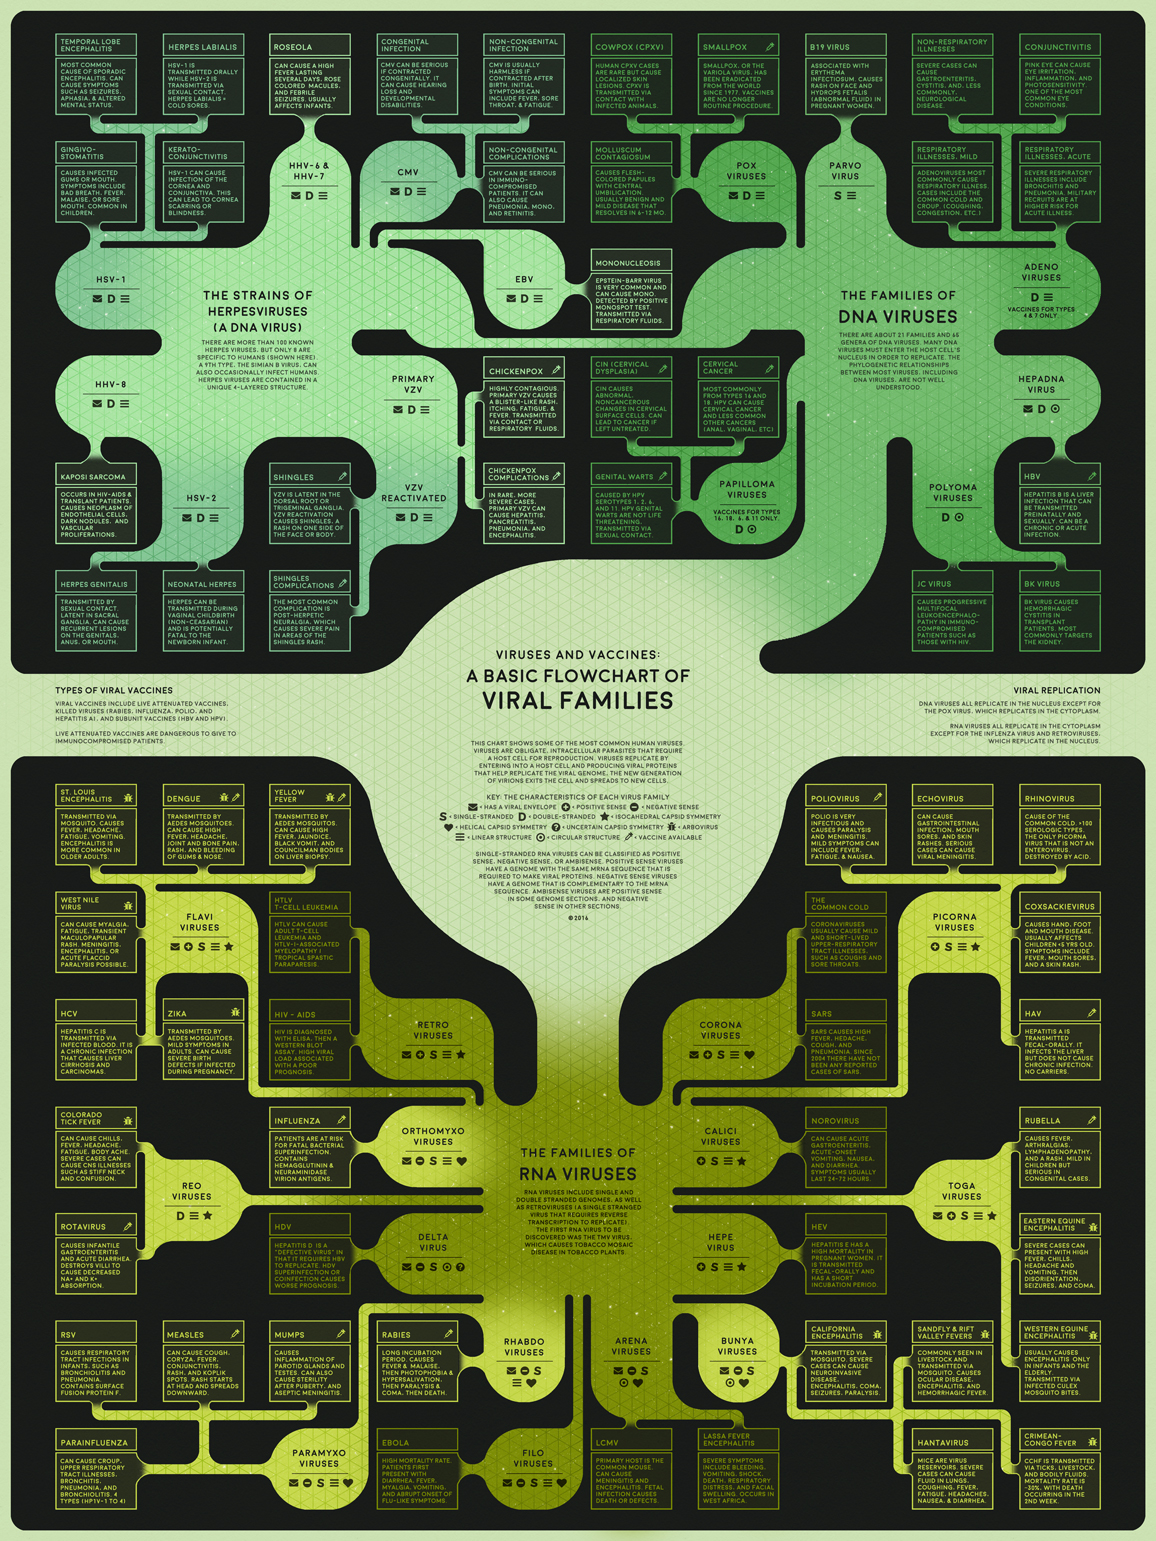 Viruses and Vaccines: A Basic Flowchart of Viral Families